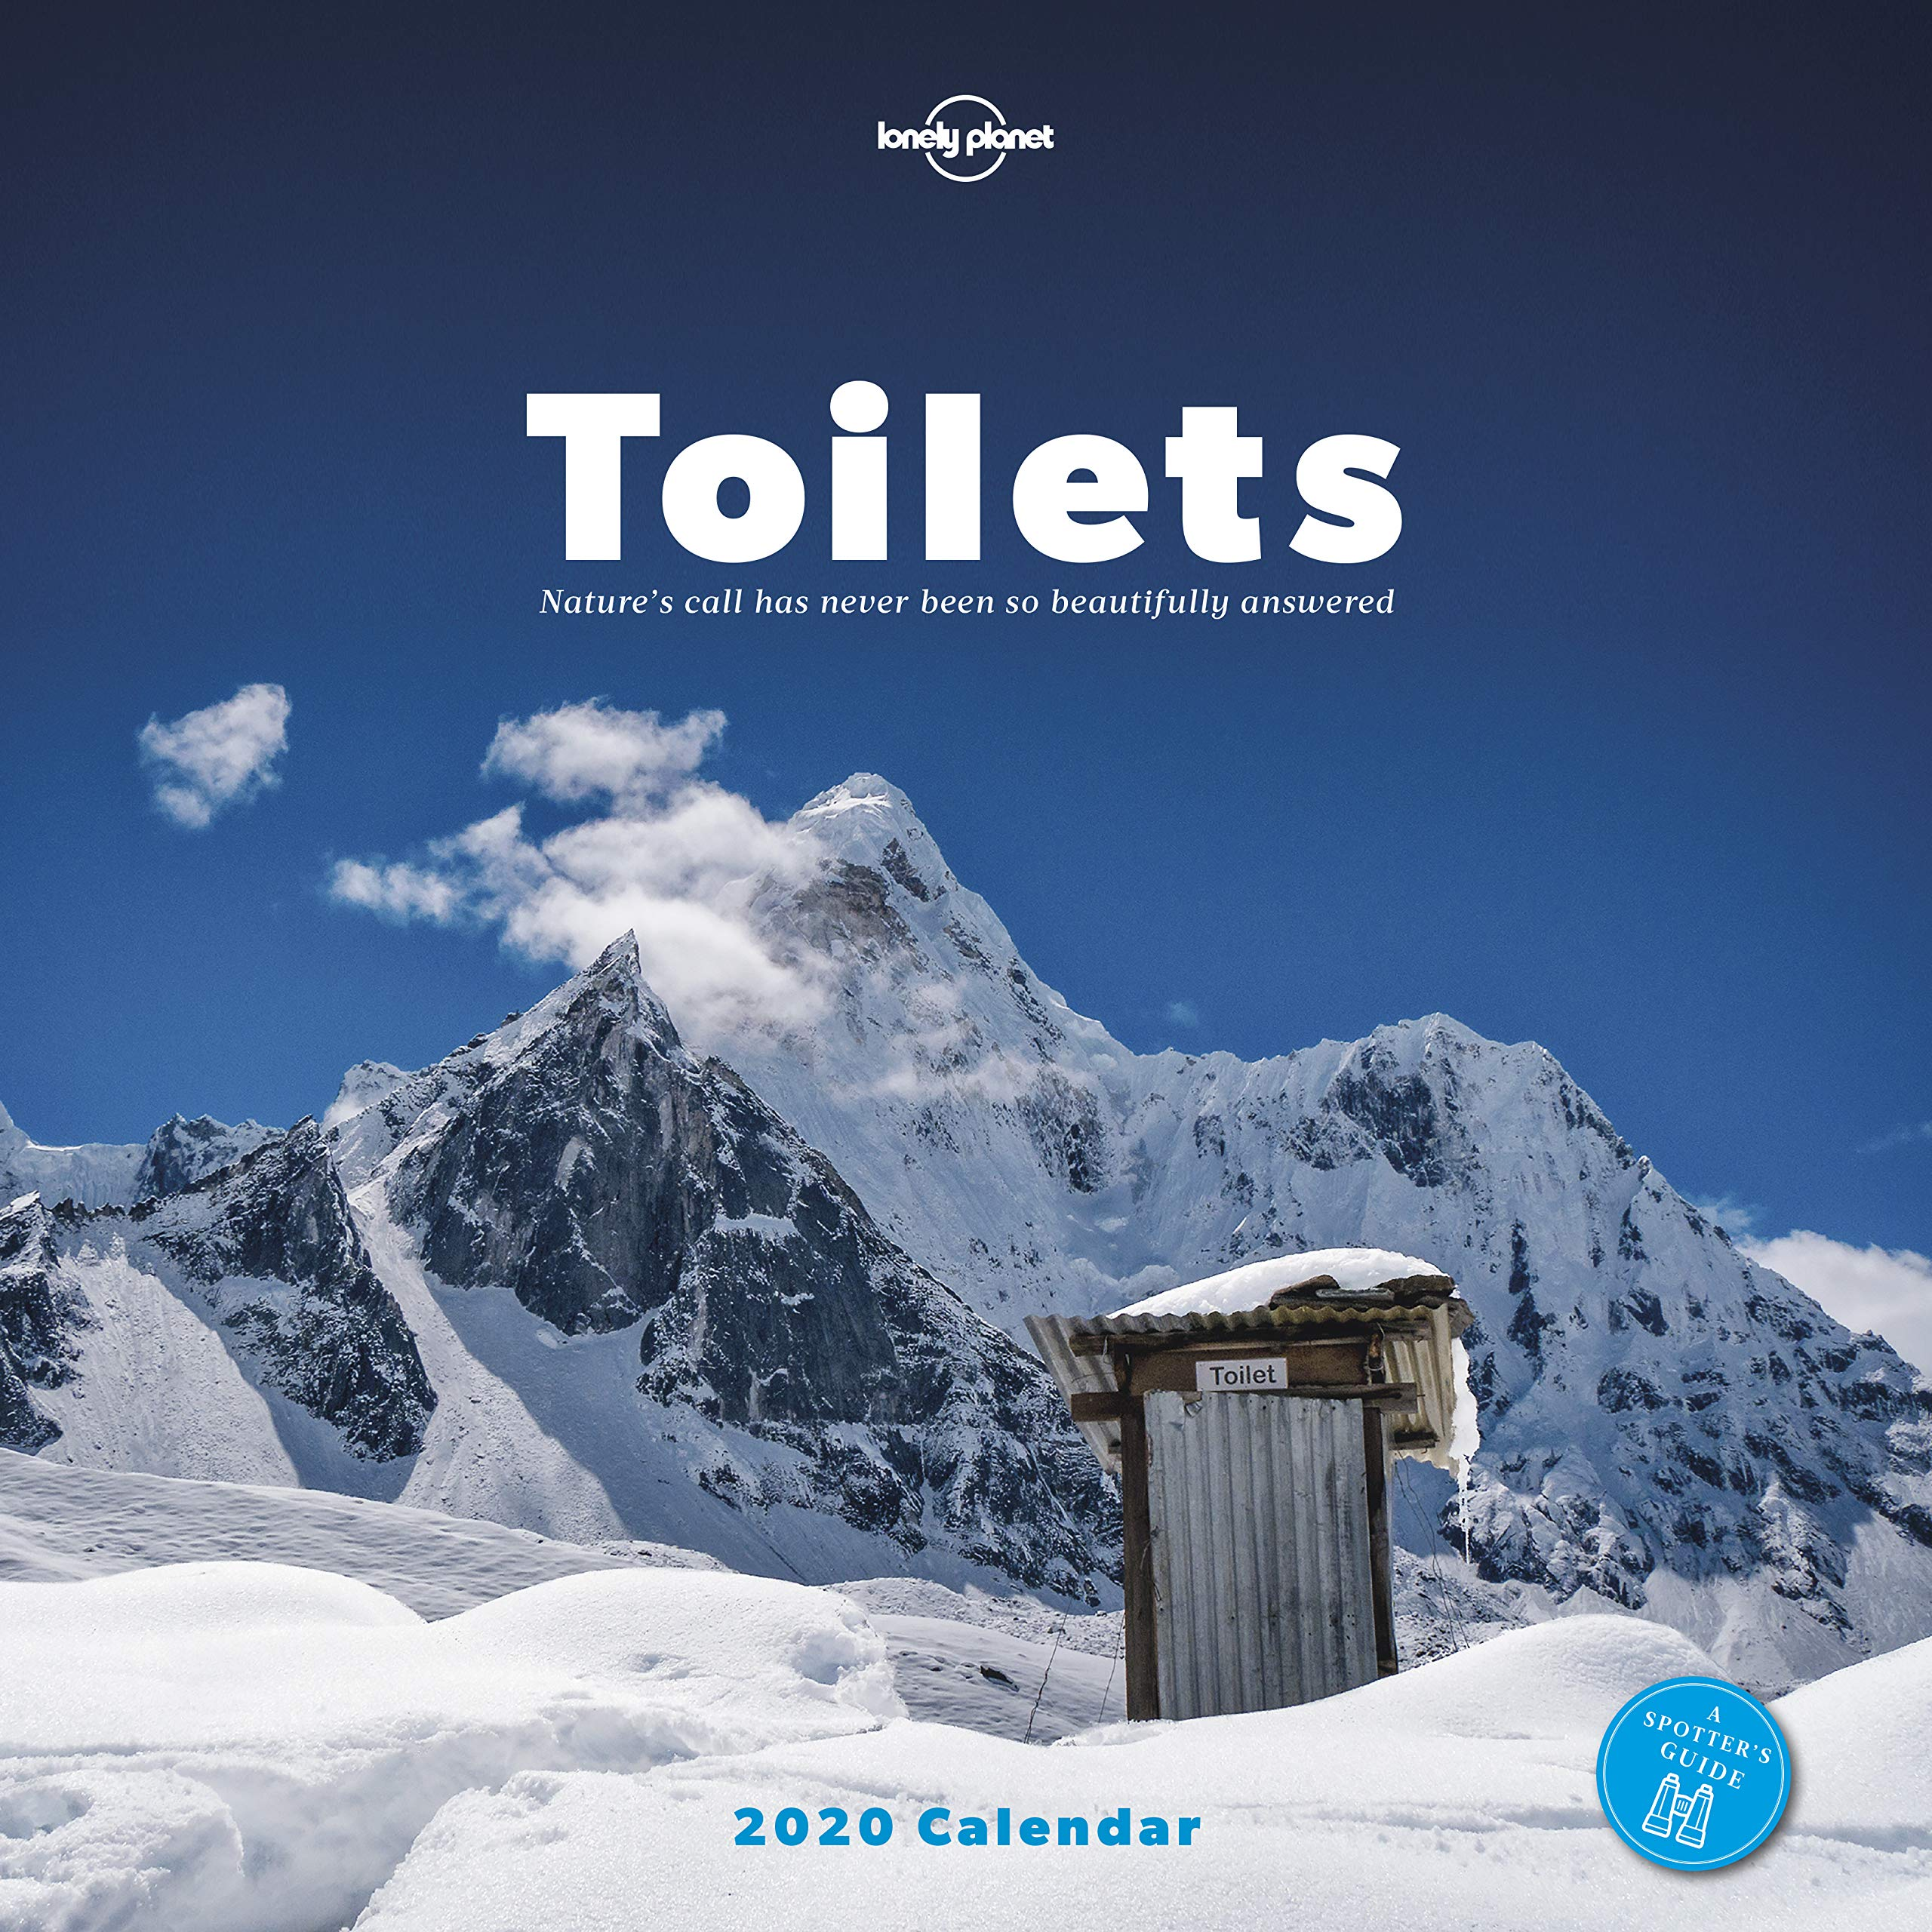 Best Toilets 2020.Toilets Calendar 2020 Lonely Planet 9781788684880 Amazon